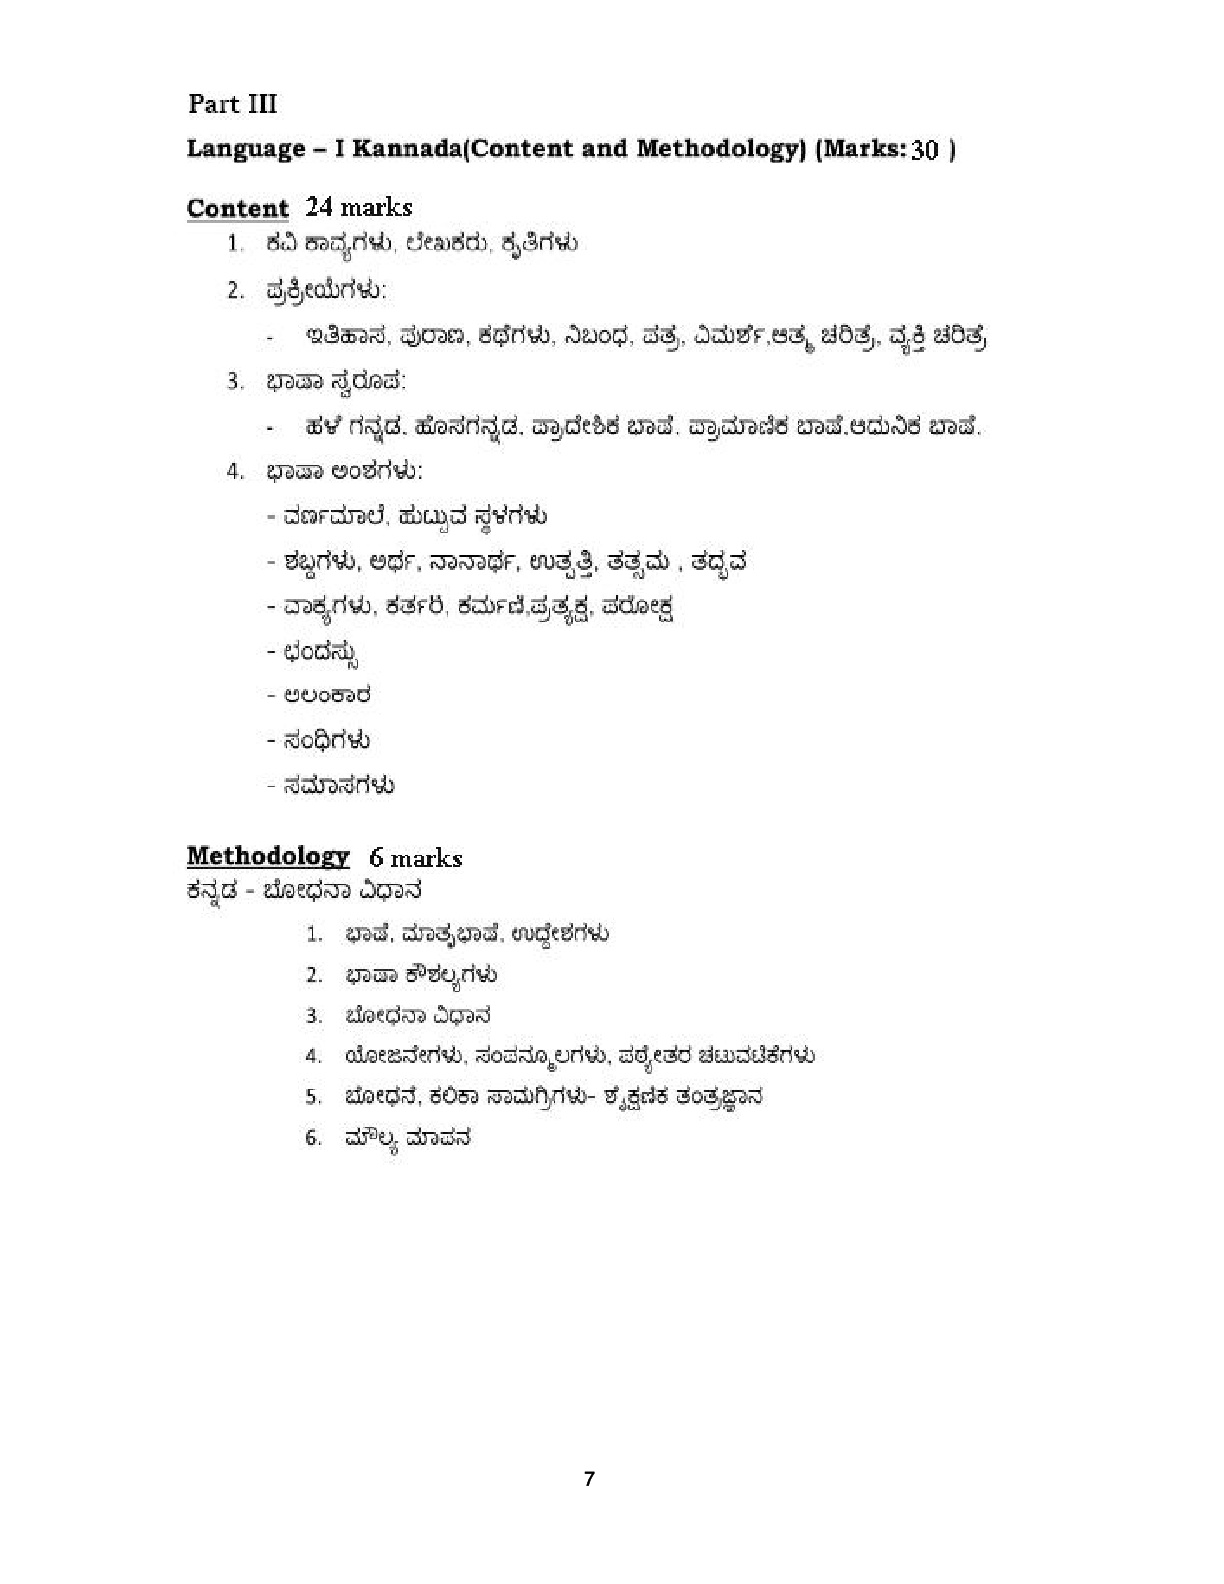 Ap tet syllabus 2018 download ap teacher eligibility test paper 1 iii language ii english content and methodology marks 30 malvernweather Images